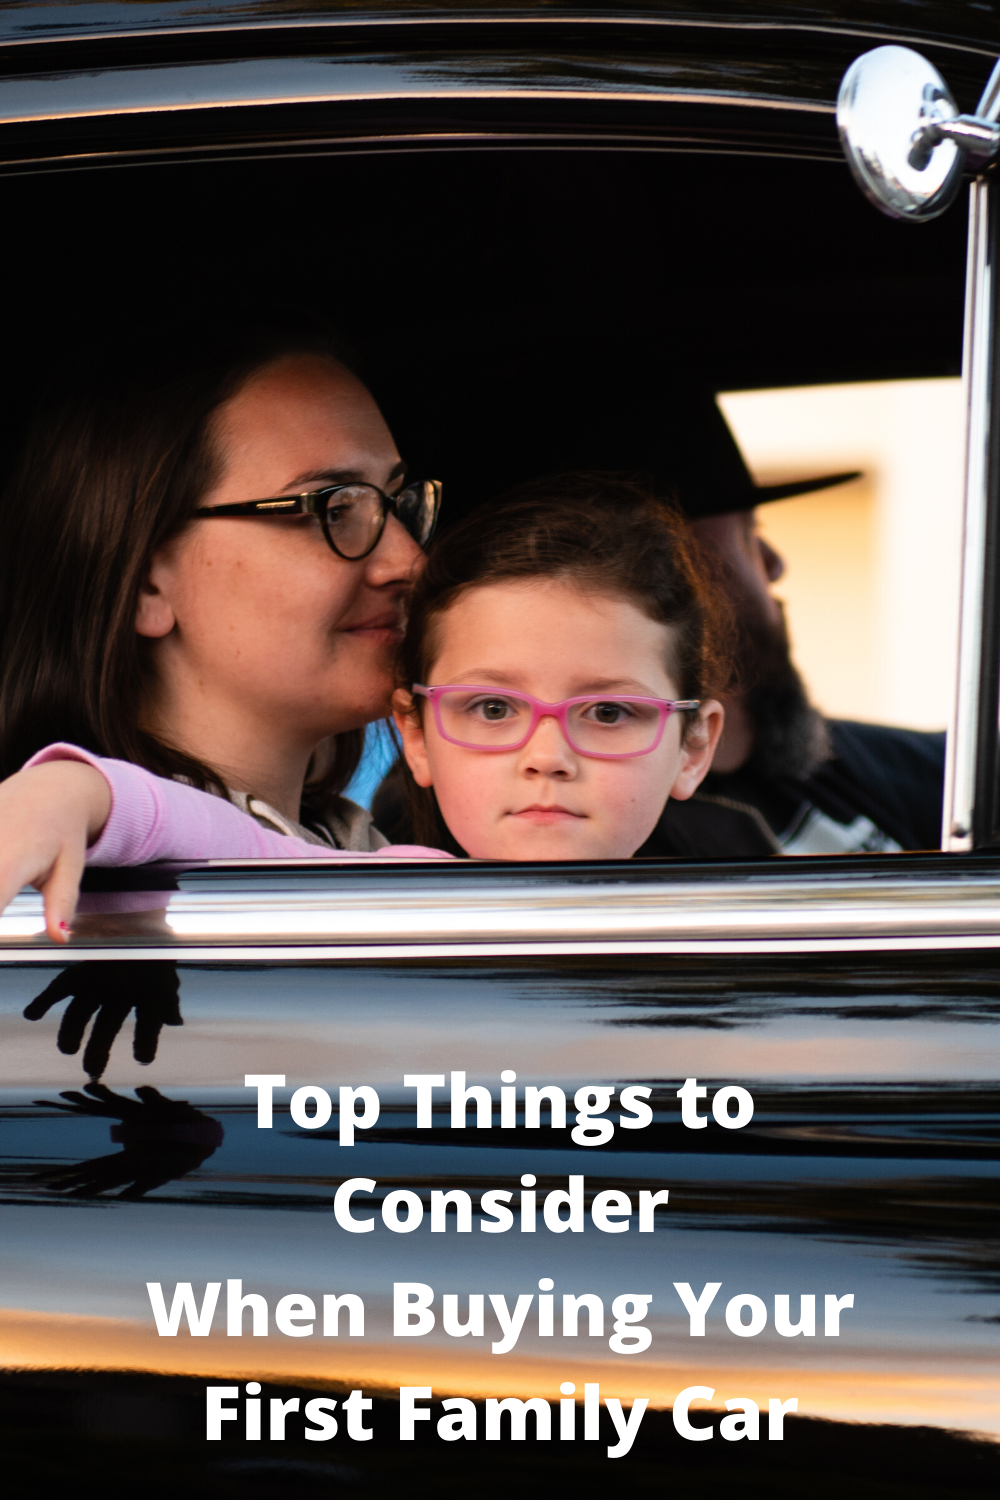 Top Things to Consider When Buying Your First Family Car